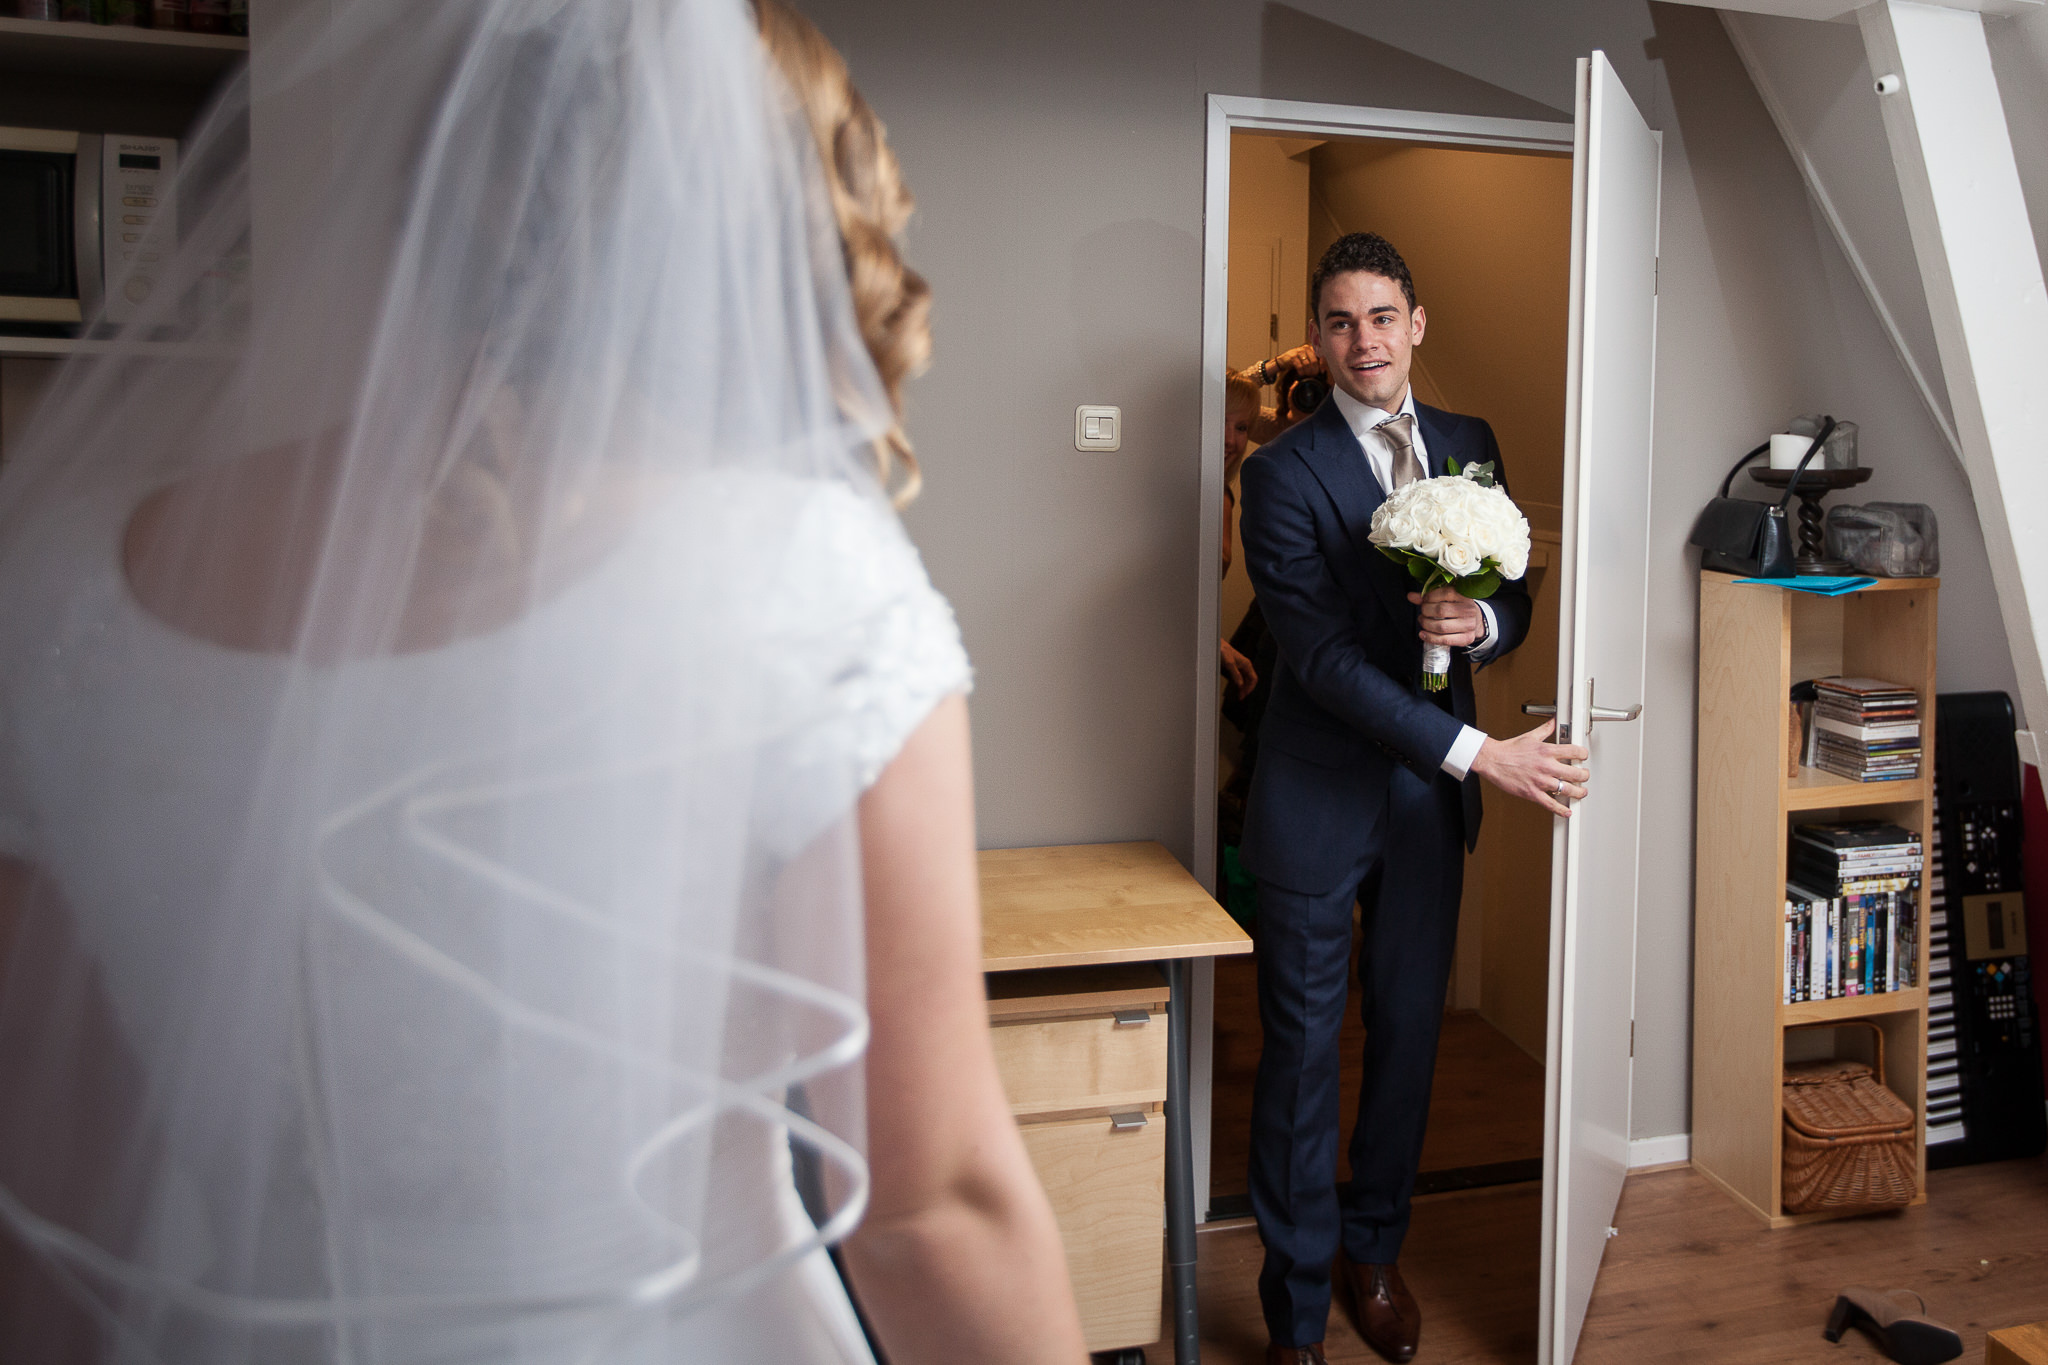 bride groom first look wedding photos Irish photographer david duignan photography dublin ireland 1112